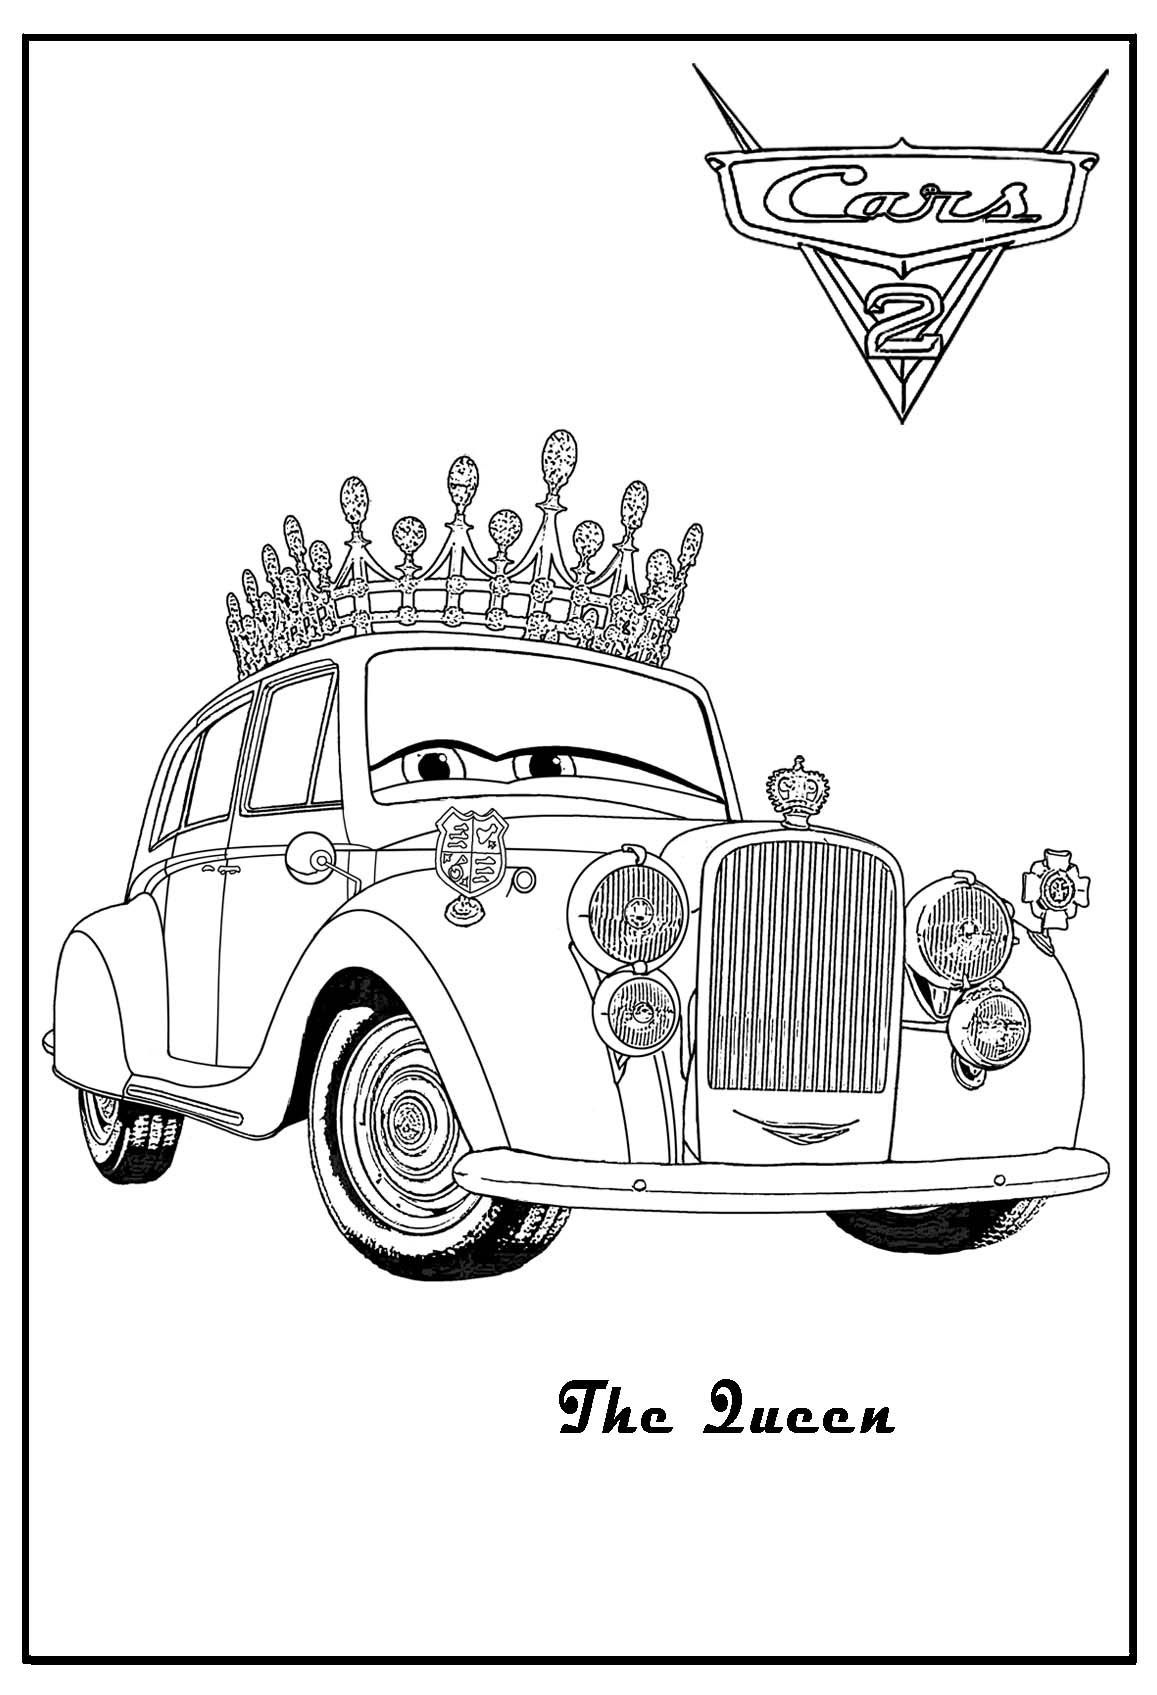 Cars 2 coloring pages - Cars 2 Printable Coloring Pages Cars Coloring The Queen Cars Coloring Luigi Cars Coloring Lamborghini